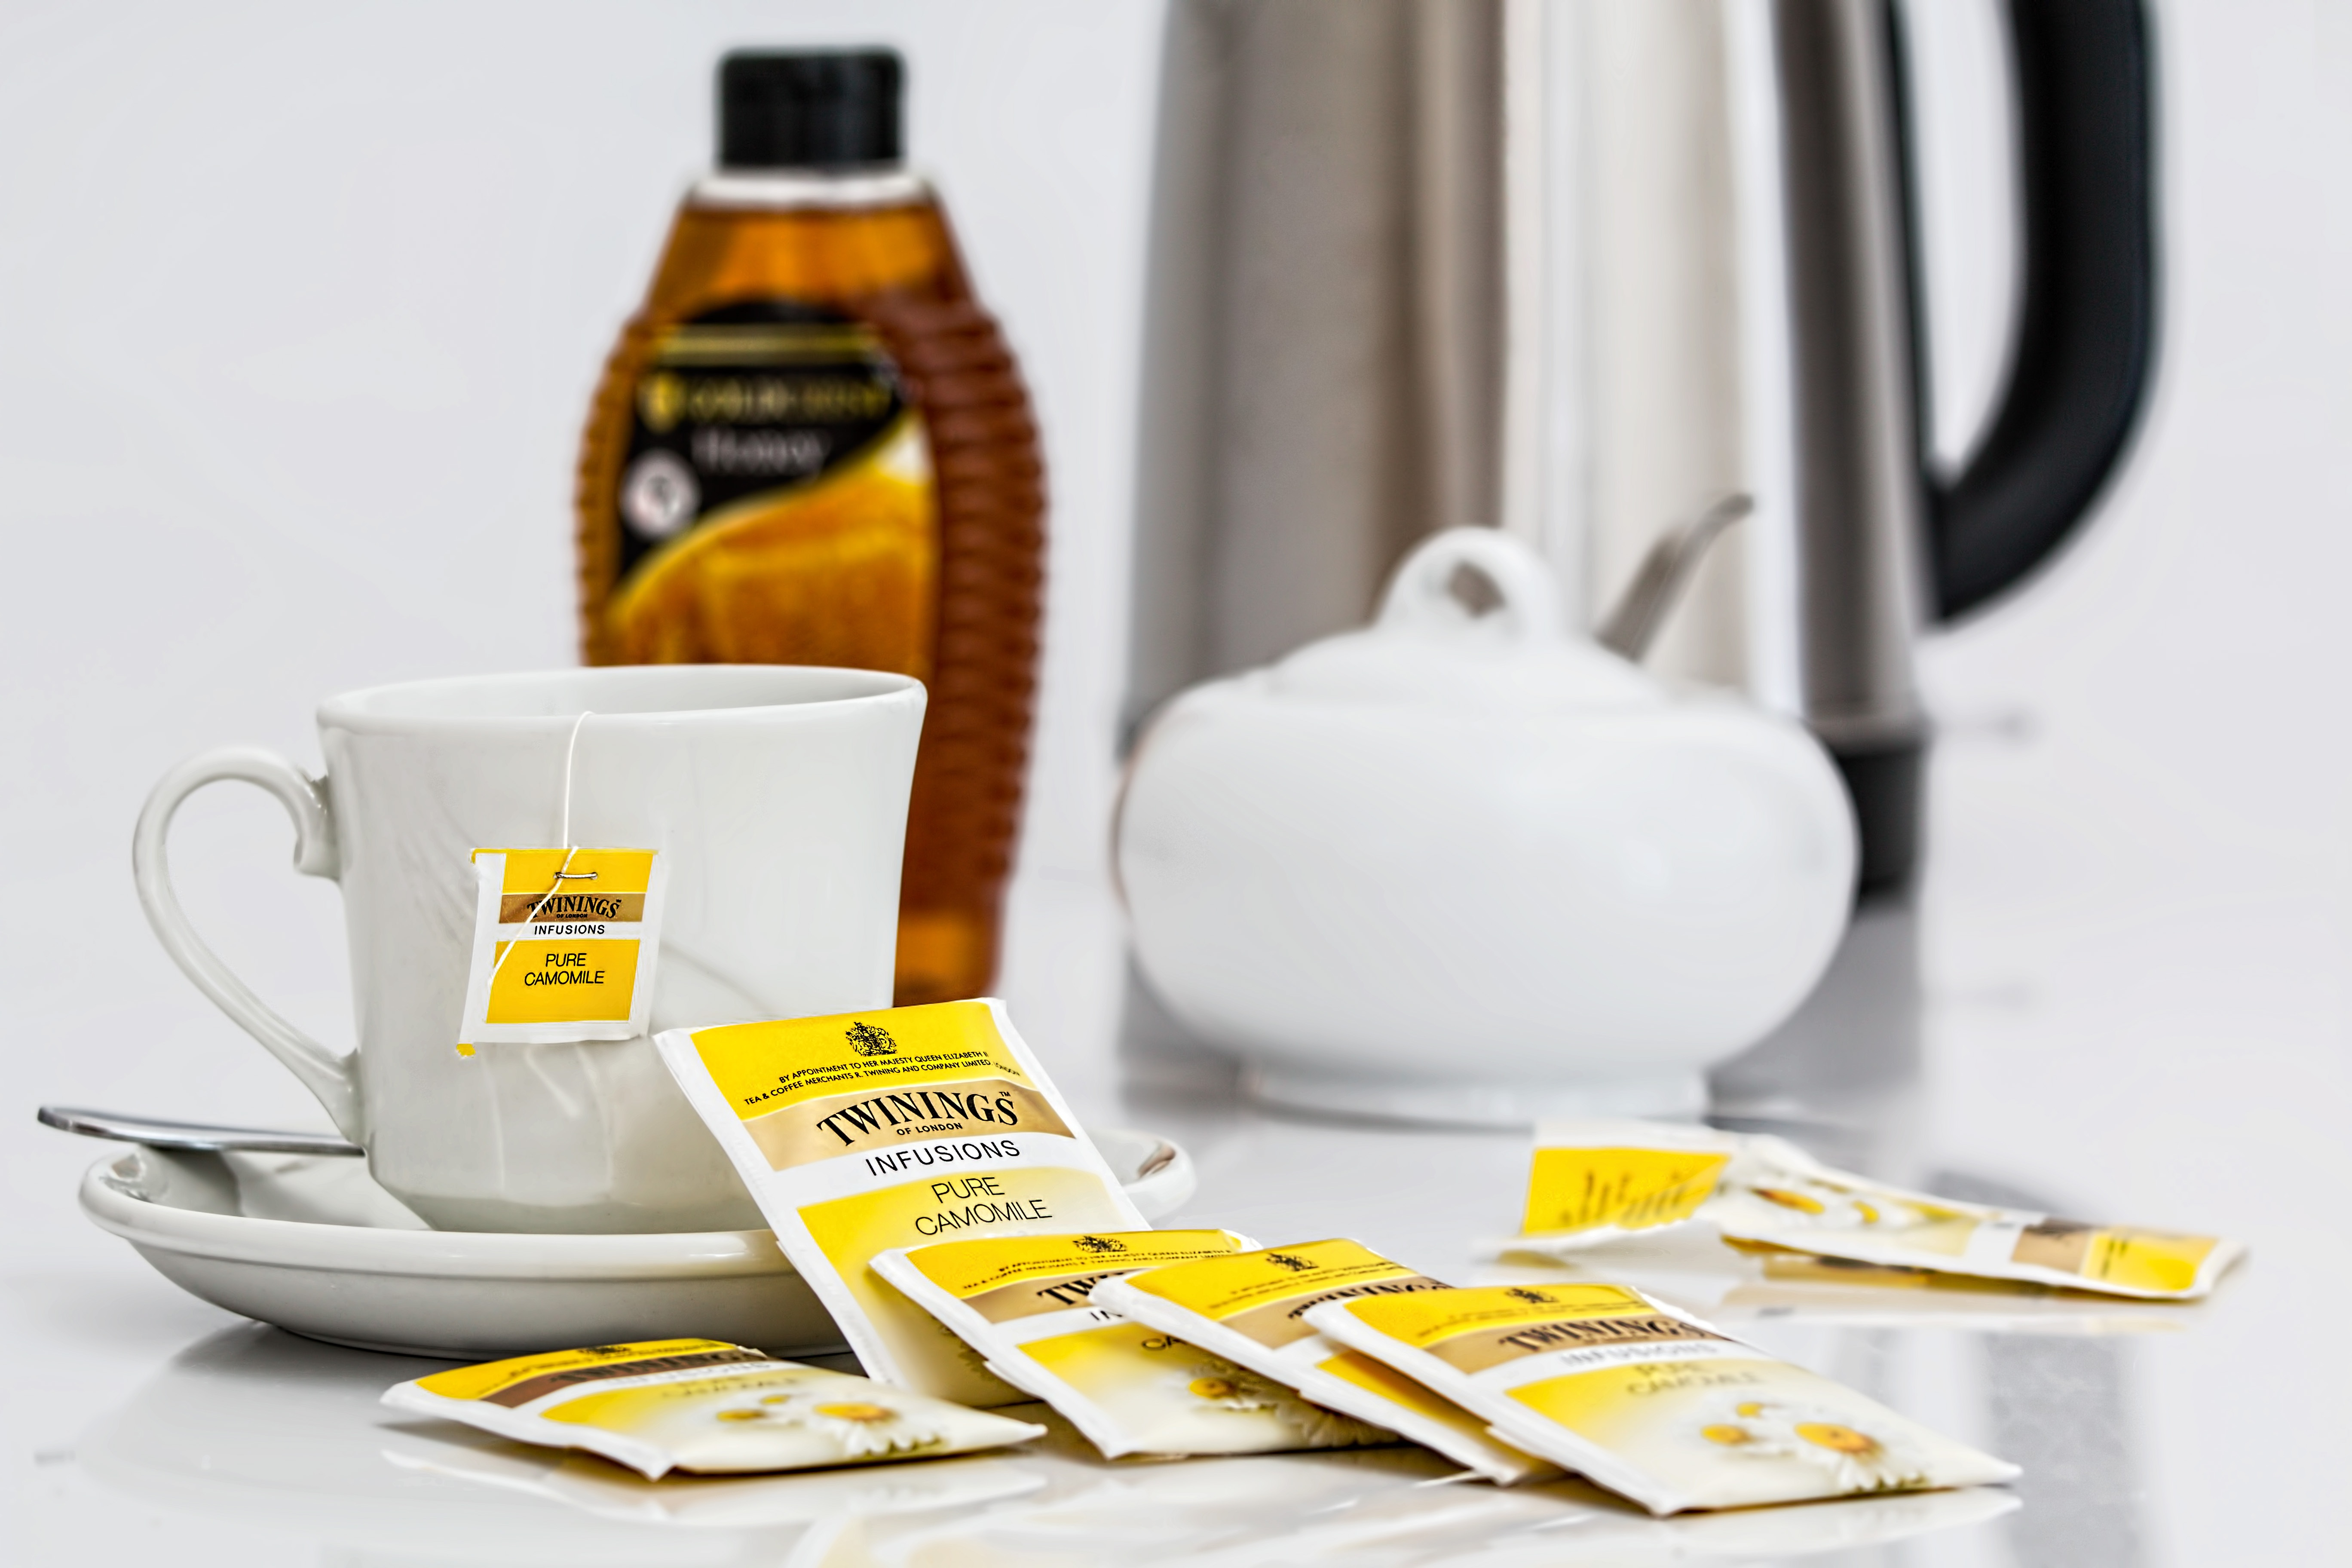 Free Download Herbal Tea Bags Cup Stock Photos Images Hd Wallpaper Hd 5472x3648 For Your Desktop Mobile Tablet Explore 42 Teabag Wallpaper Teabag Wallpaper